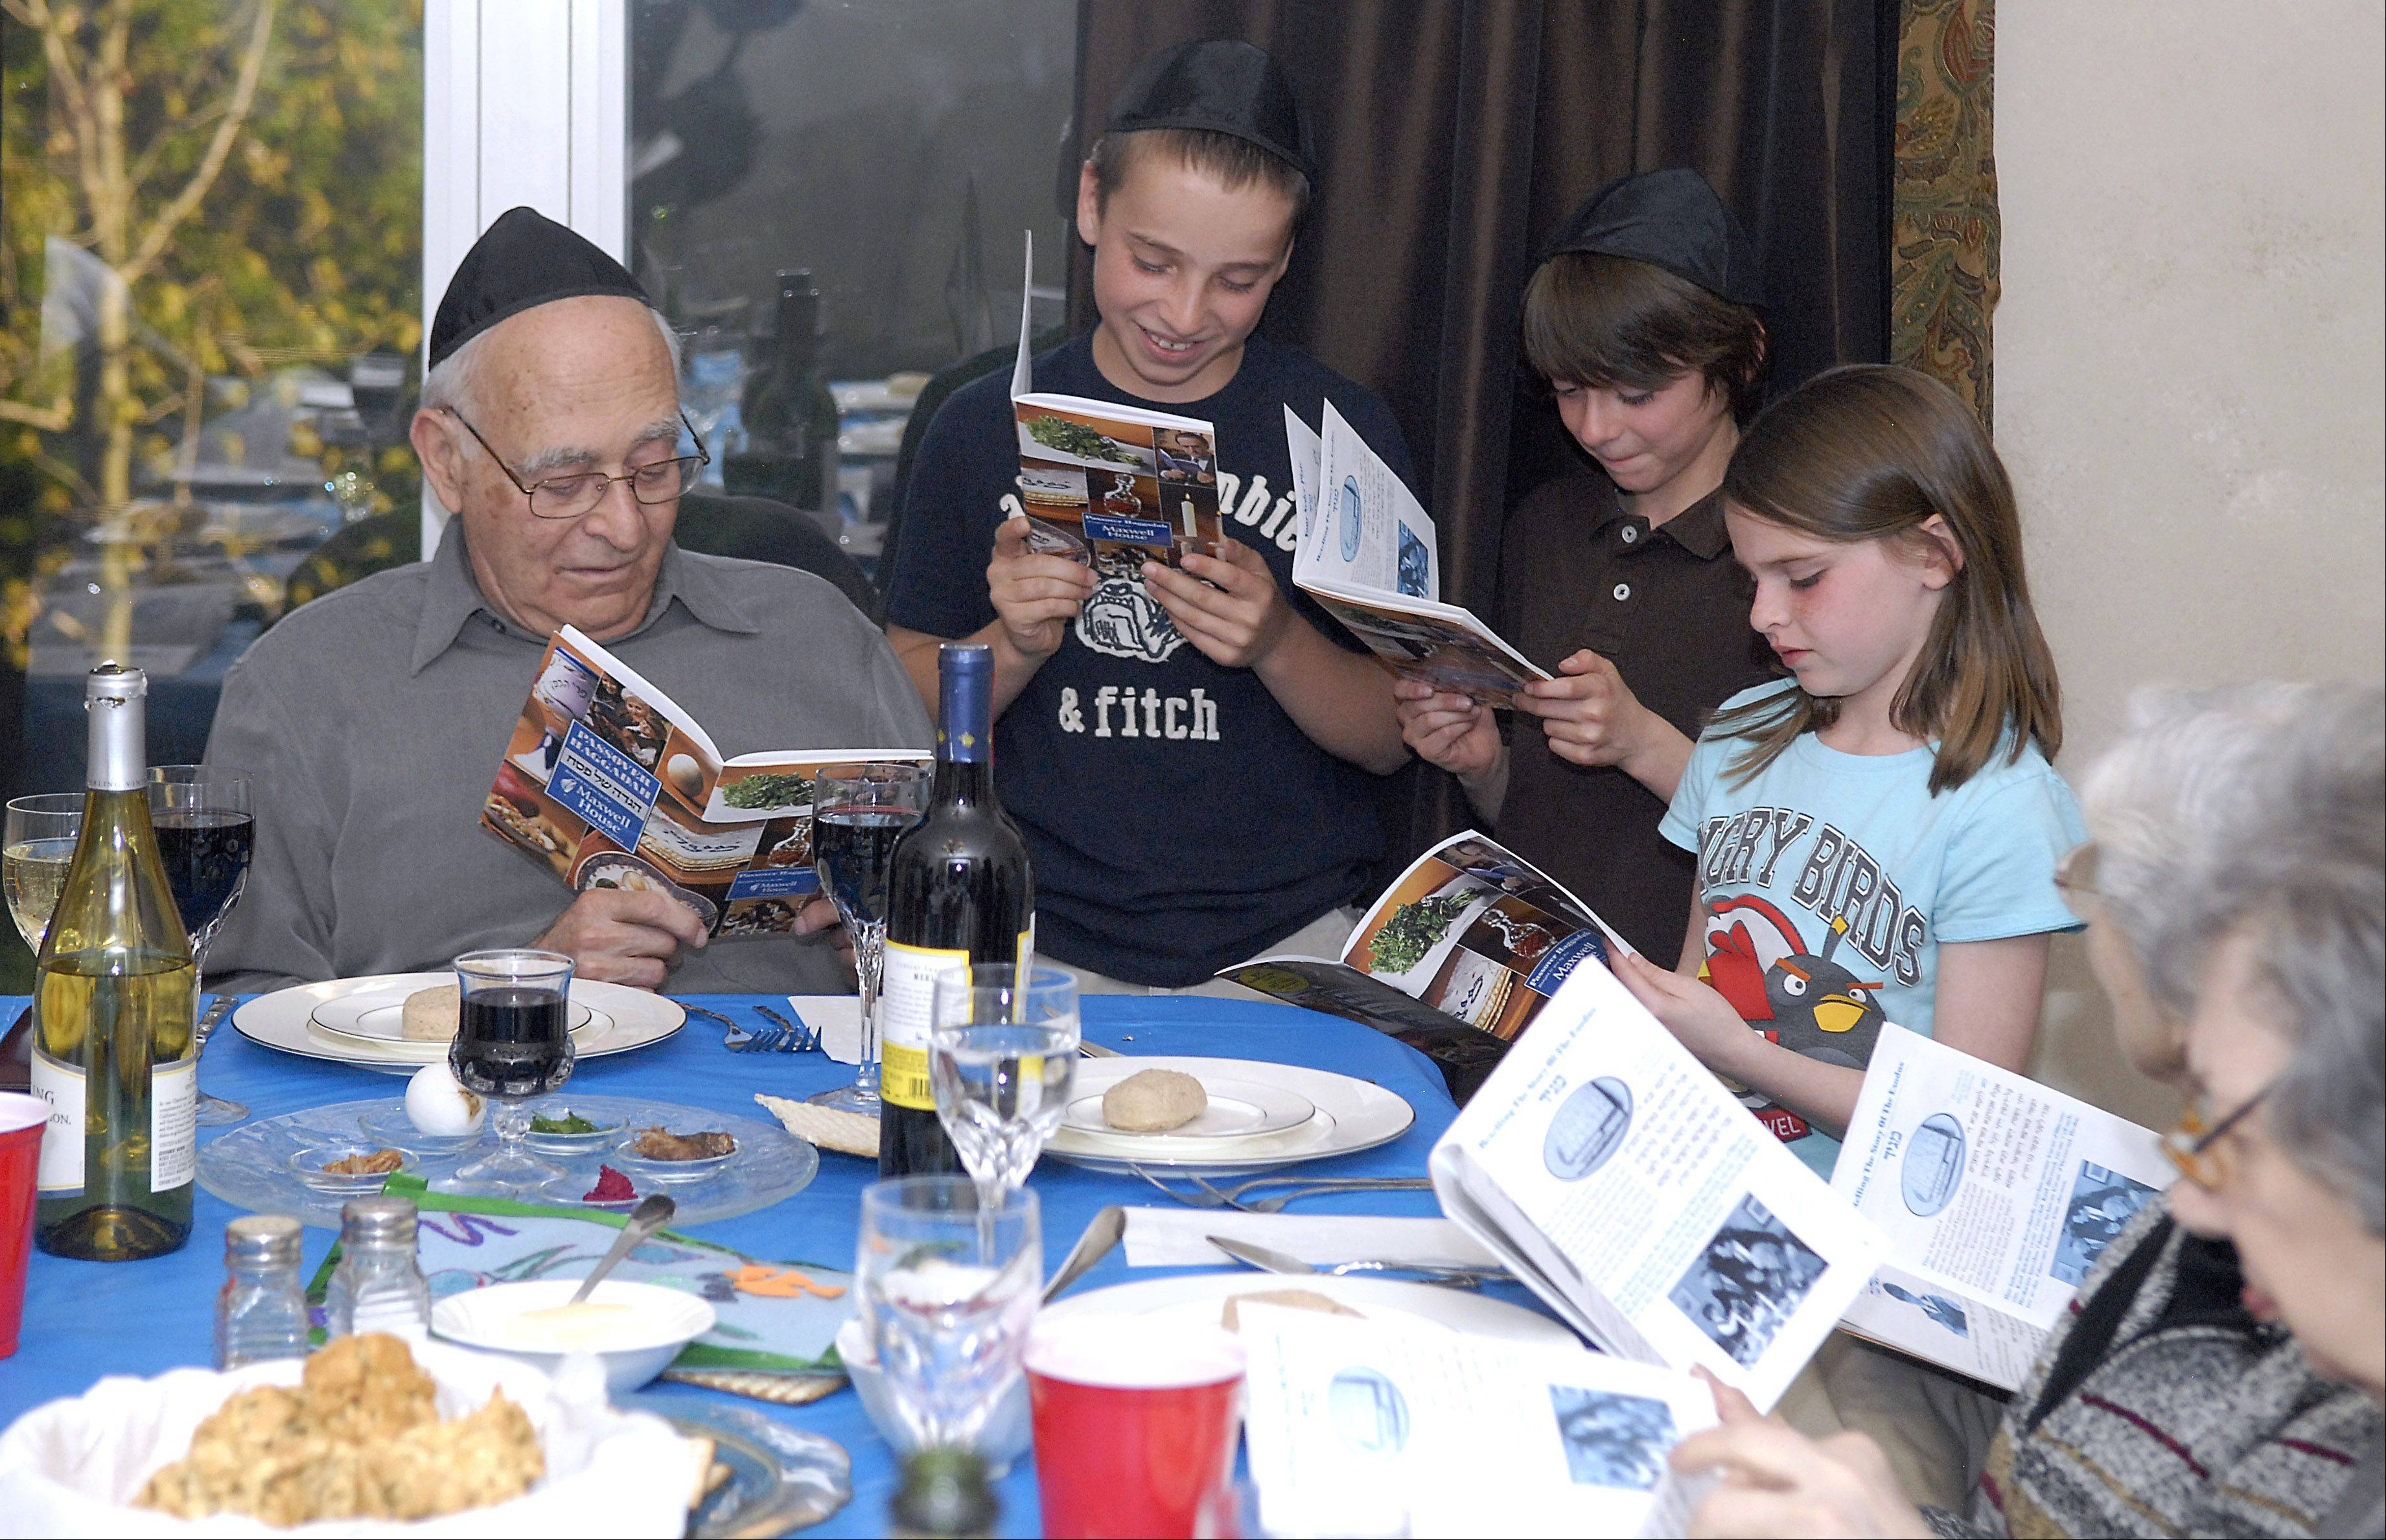 Archie Fogel of Mt. Prospect listens to his grandchildren Ben Anderson, 11, Jacob Fogel, 11, and Gena Fogel, 9, read from the Passover Haggada prayer book at their family's Passover Seder on Friday. Ben's mother, Barb, hosts the family Passover Seder in their St. Charles home. Siblings Jacob and Gena are from Cary. Barb and her husband, Jeff, have been hosting the Seder for the past 10 years, which was hosted by her mother, Joyce, prior.